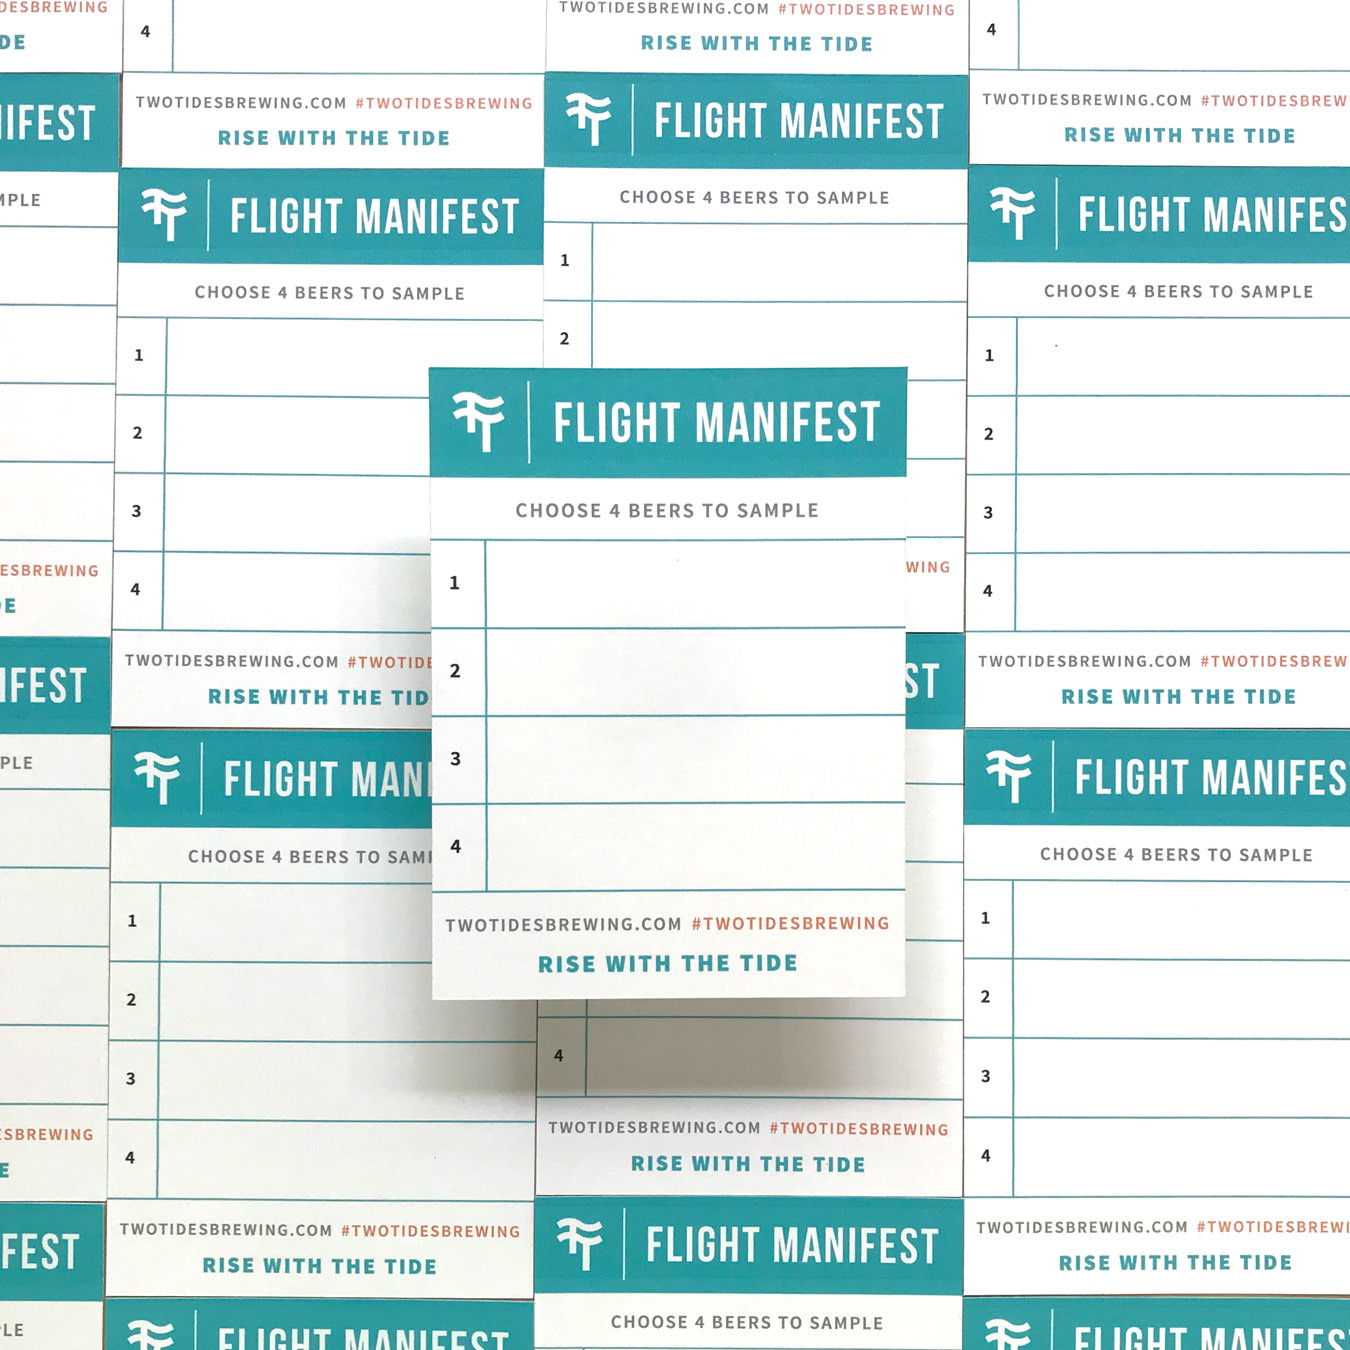 A photograph of the flight manifest that you would use to select your flight choices.